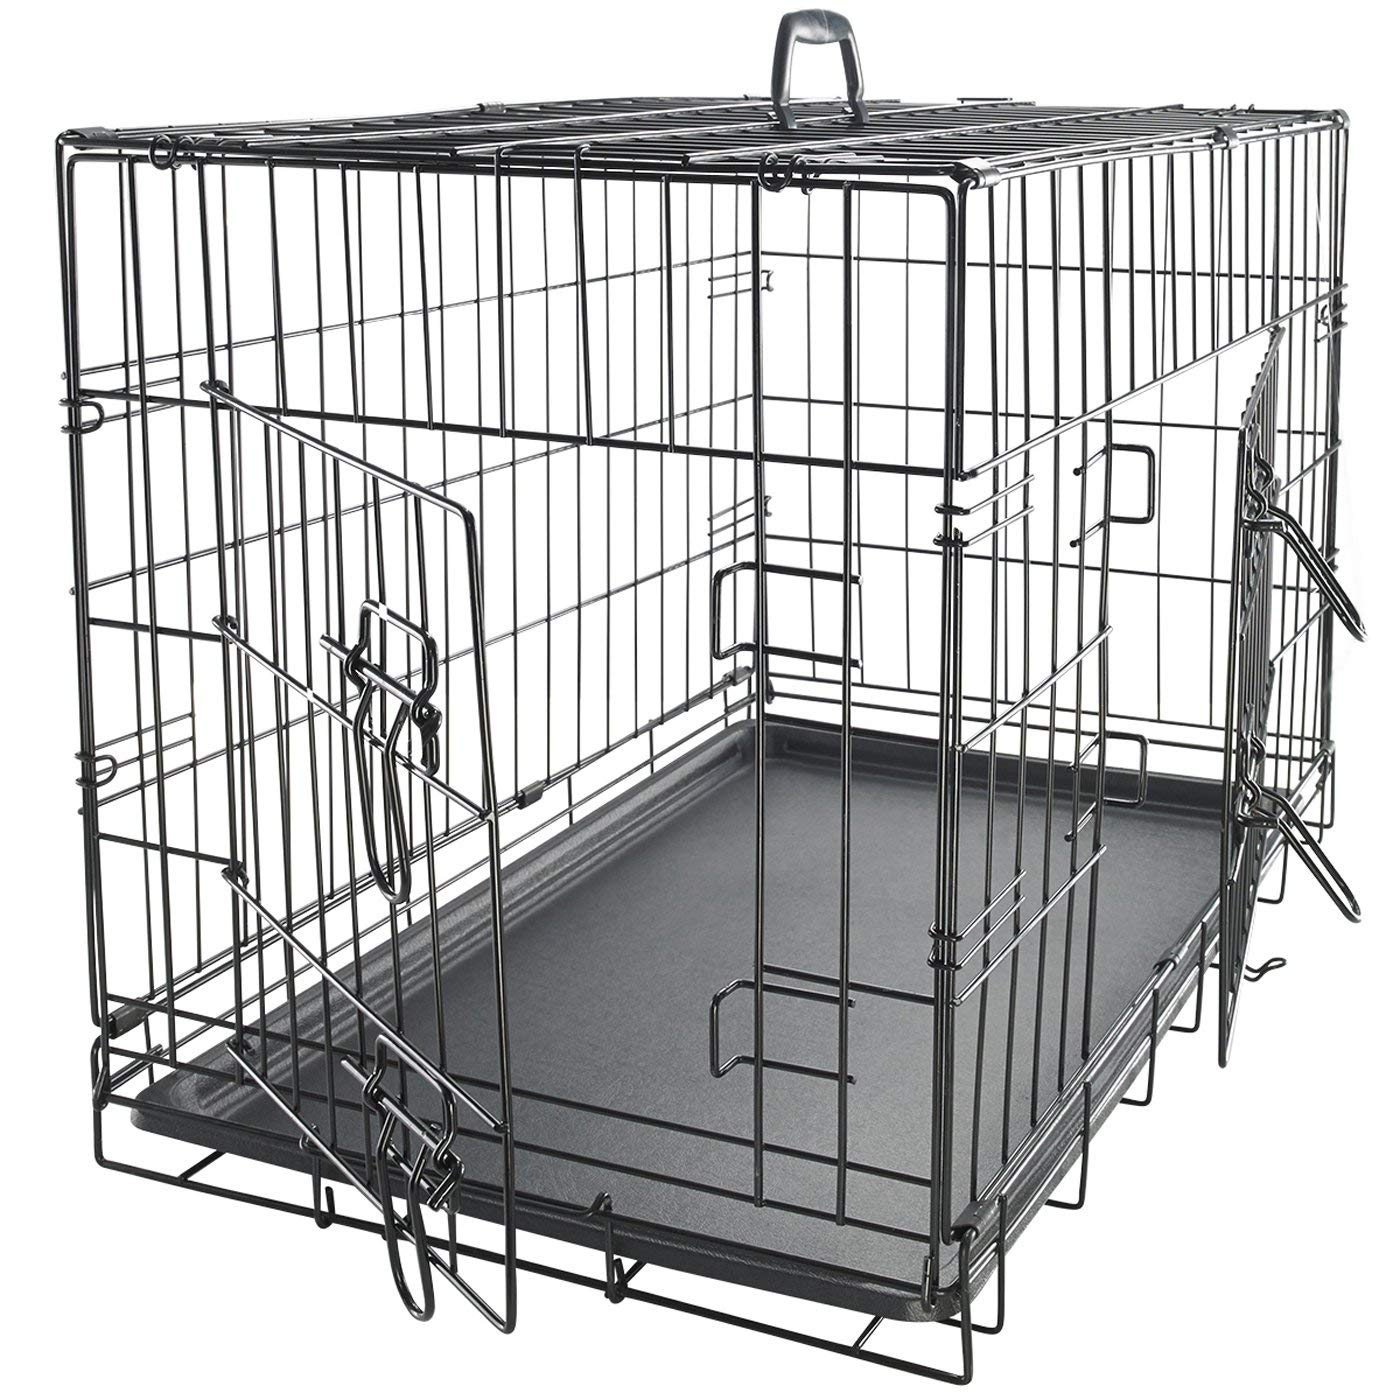 Dog Crate Double-Door Folding Metal - Wire Cage w/Divider & Tray for Training Pets - 2019 Newly Designed Model